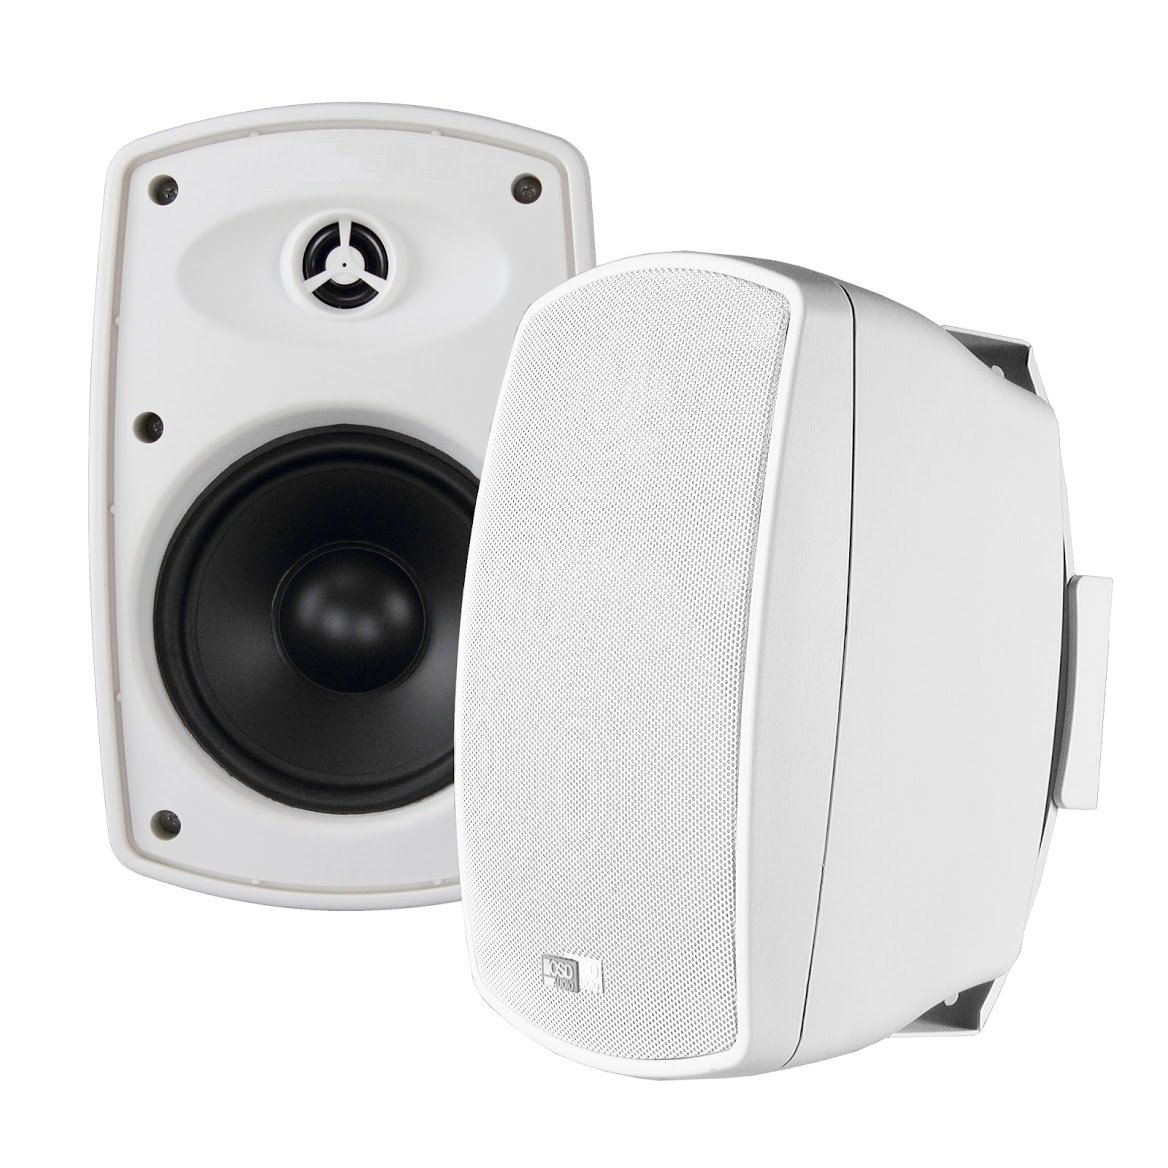 AP650 6.5-Inch 150W High Performance Composite Resin Low Resonator Cabinet 2-Way Indoor/Outdoor Weather-Resistant Patio Speakers - OSD Audio - (Pair, White)